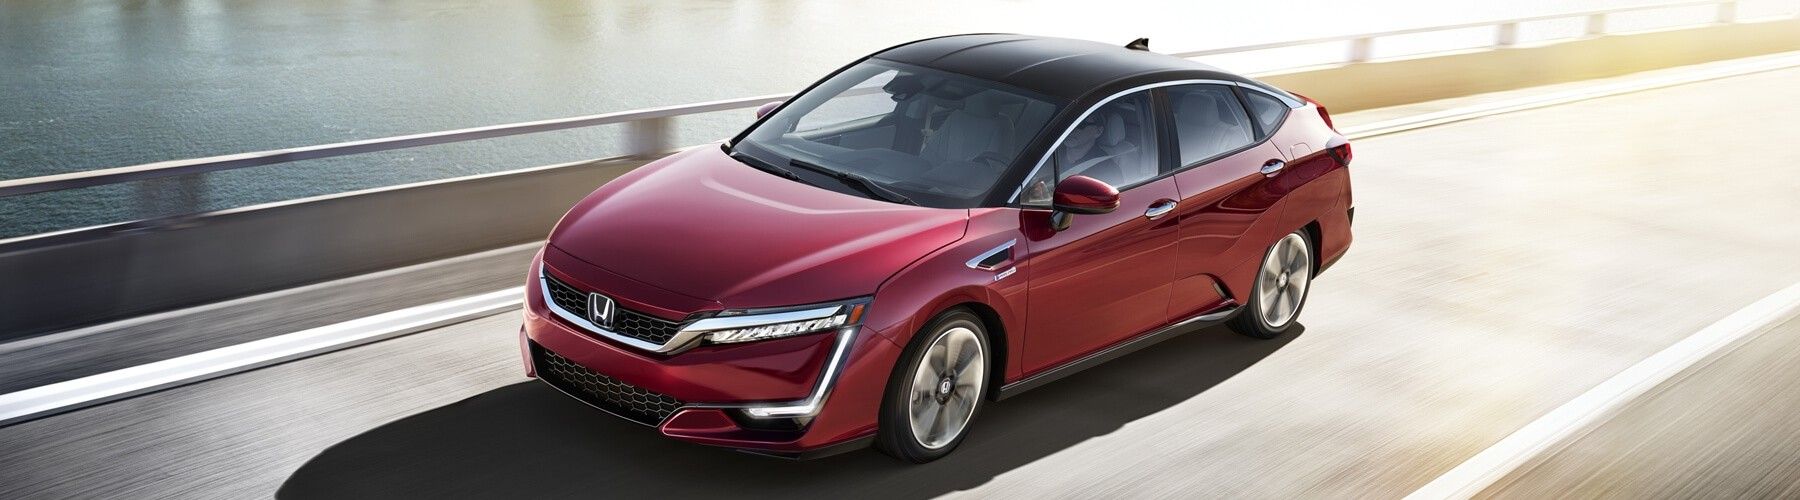 Honda Clarity Fuel Cell Smart Technology